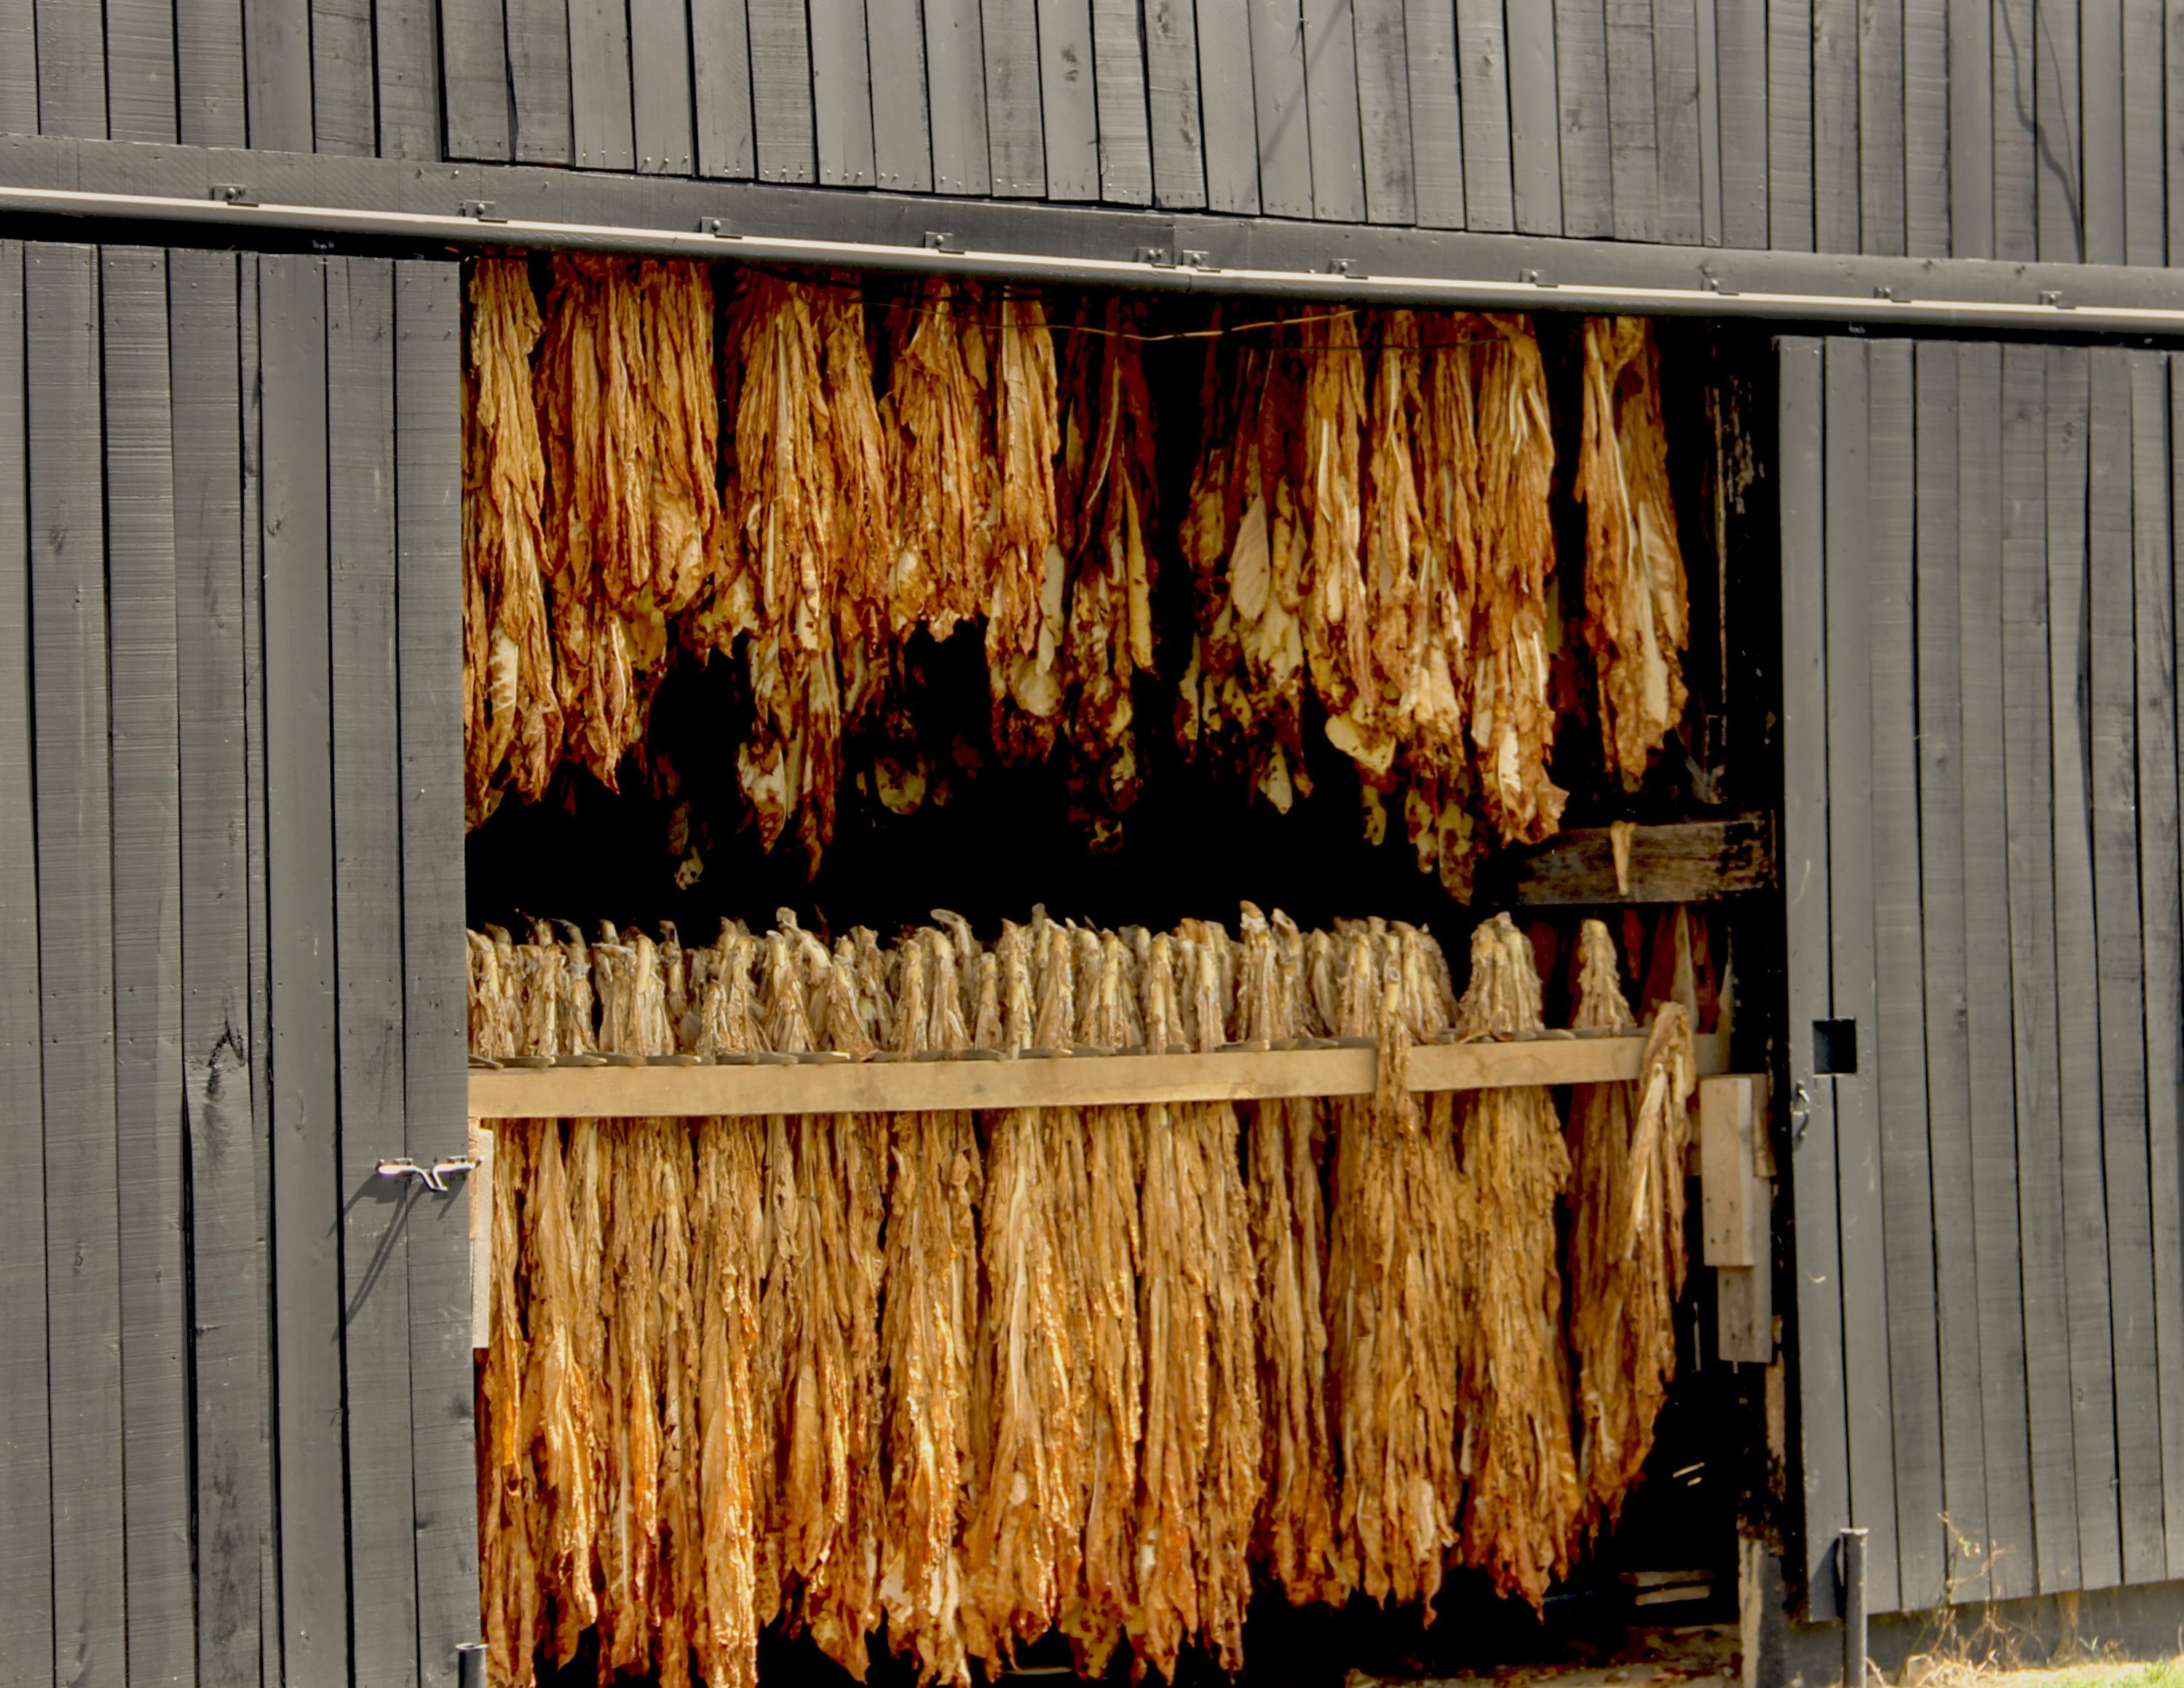 Tobacco is one of Kentucky's top five agriculture exports.